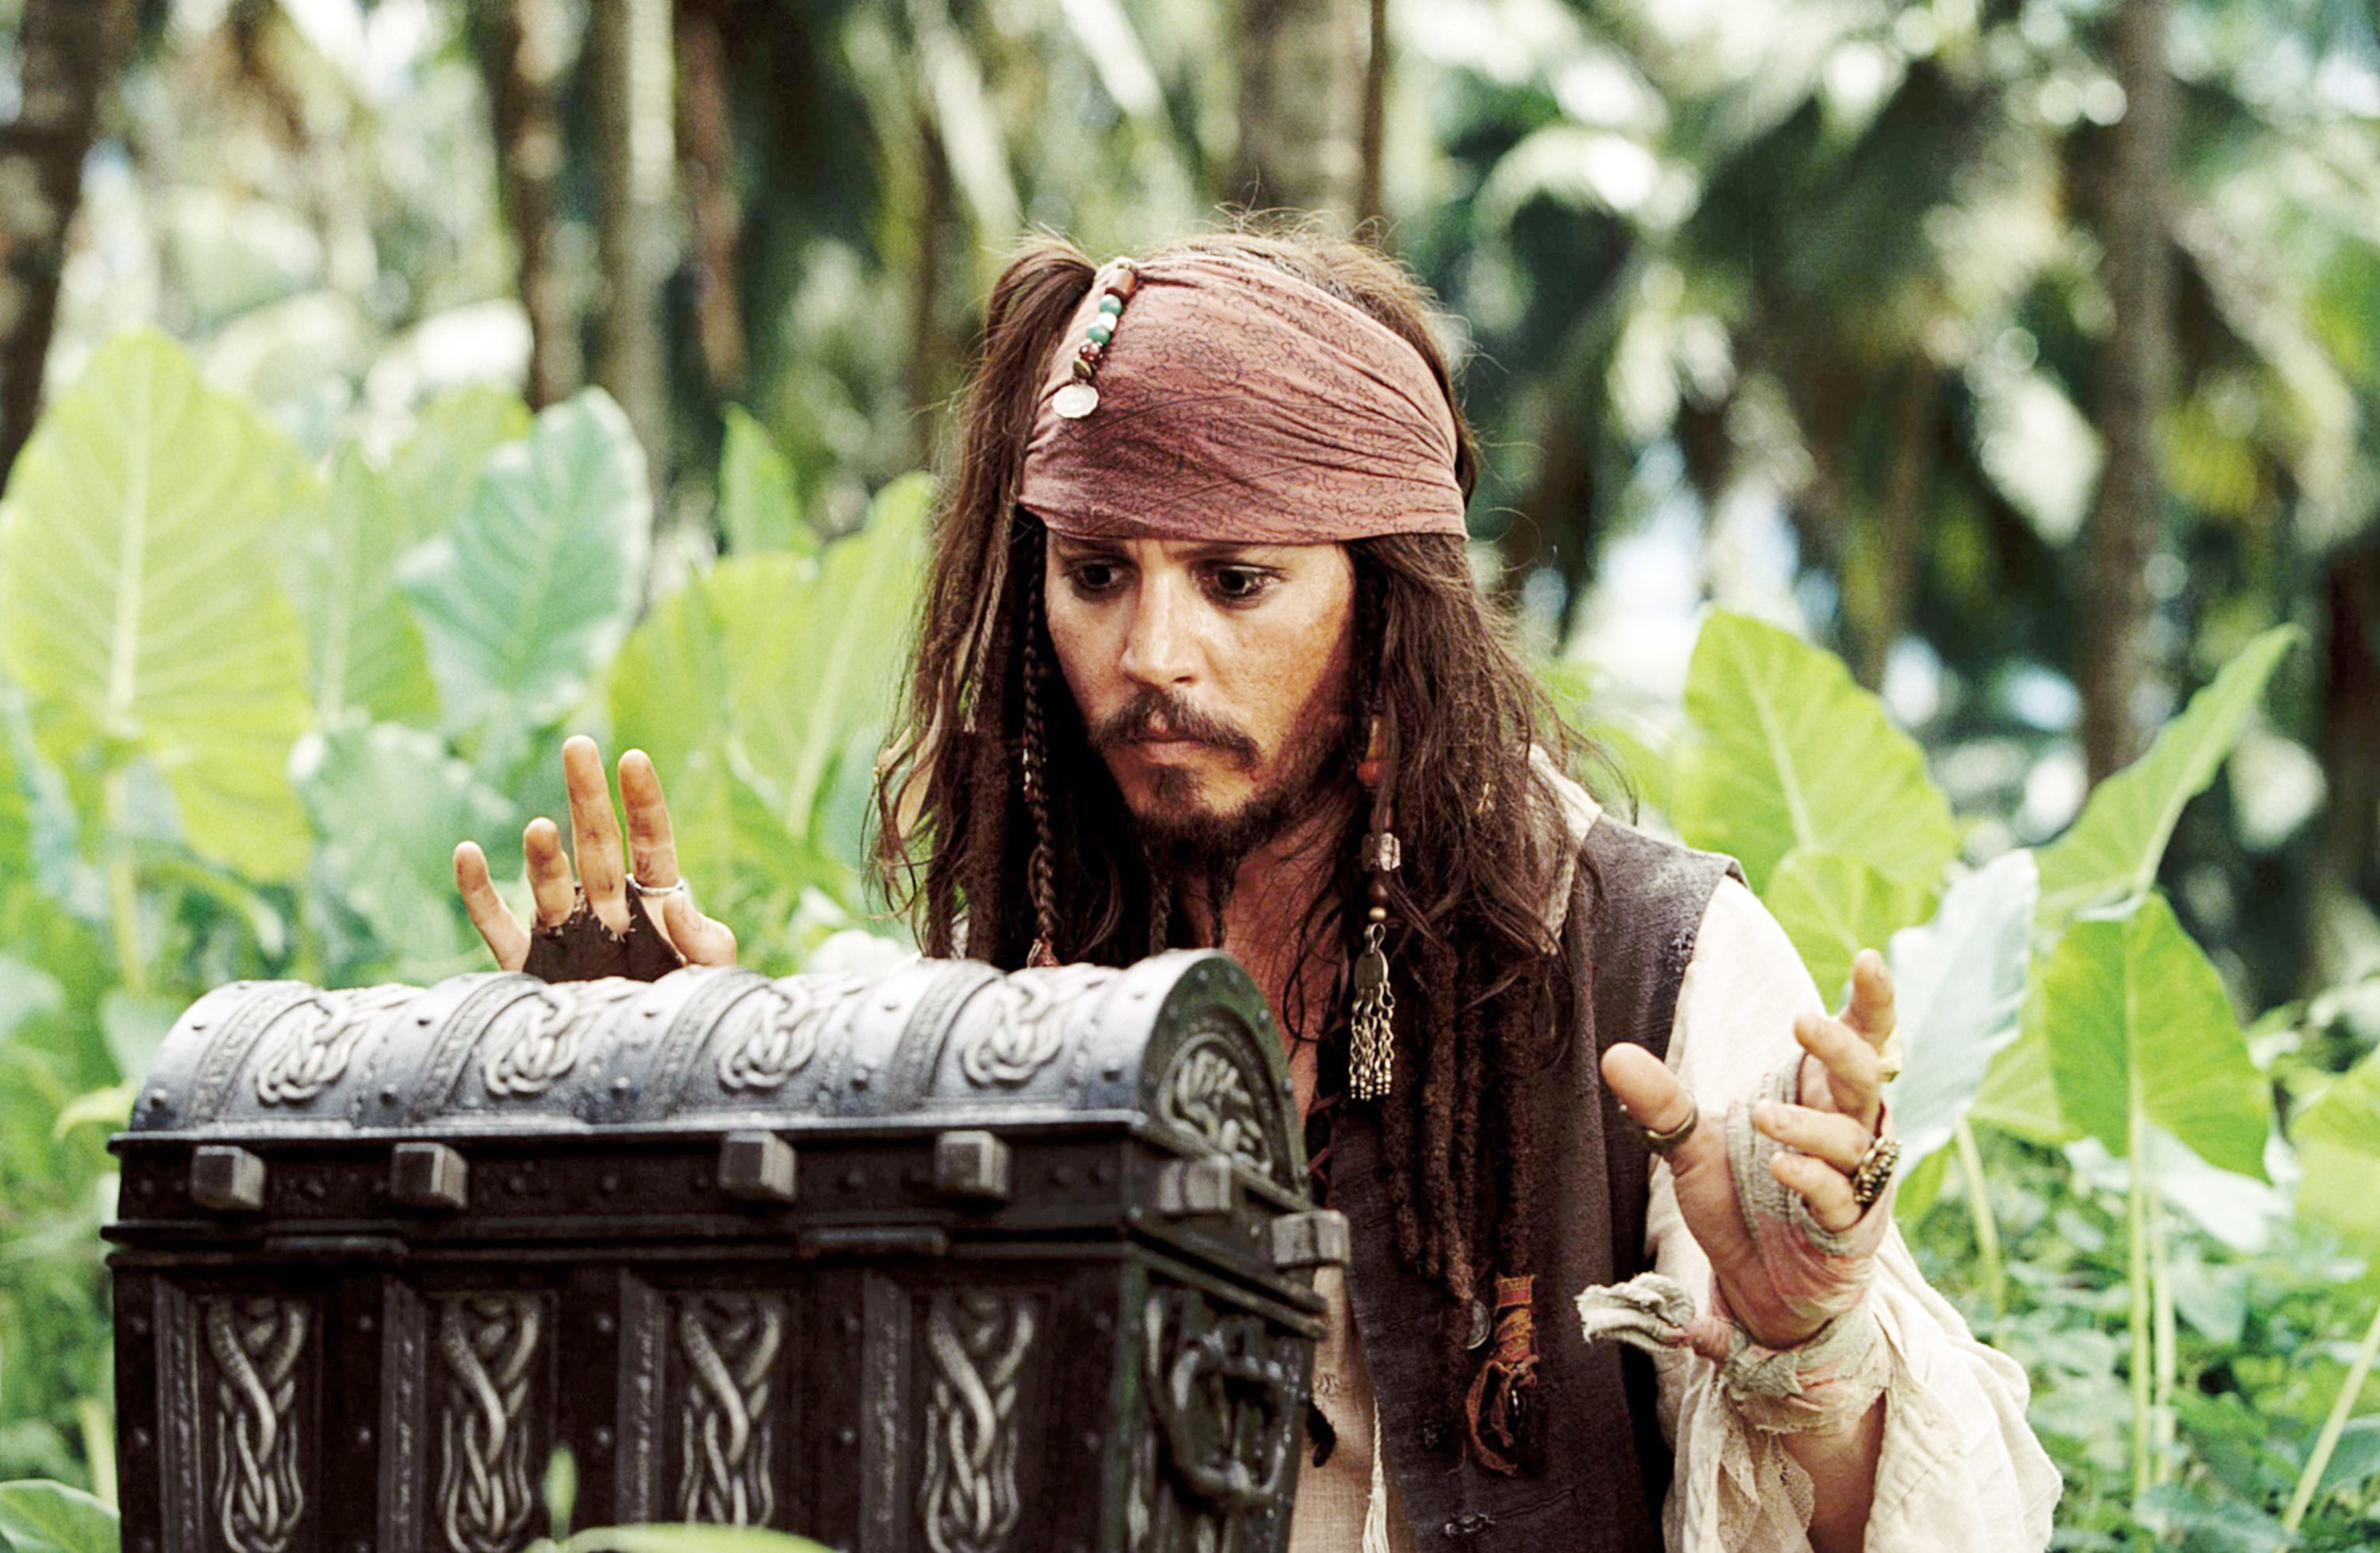 jack sparrow approaching a wooden chest